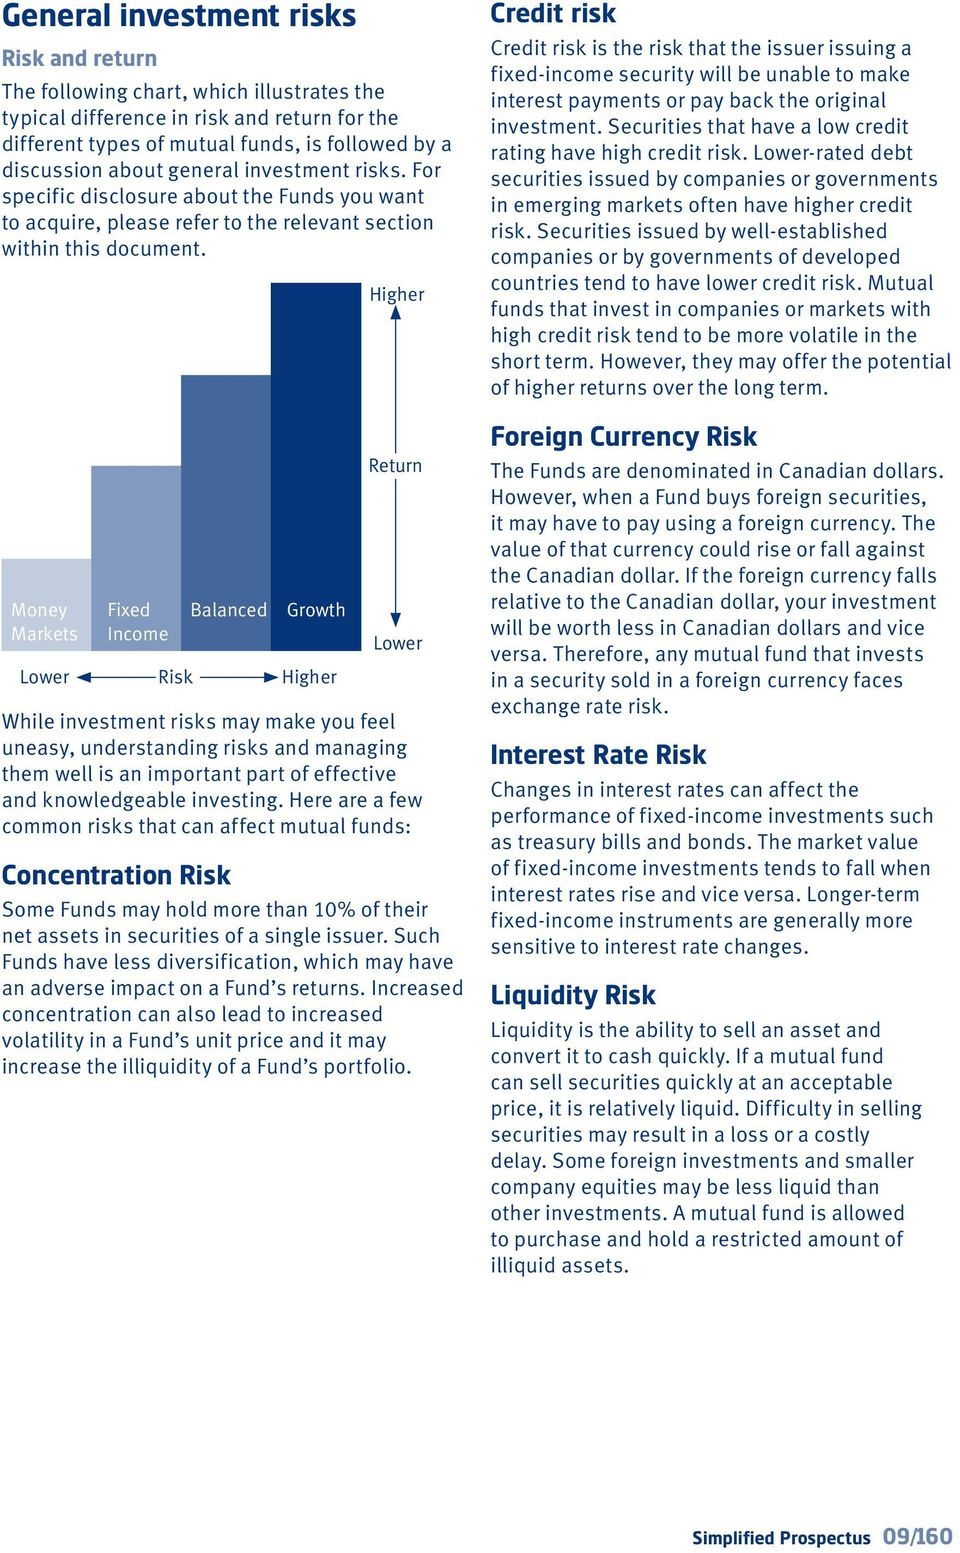 Money Markets Lower Fixed Income Risk Balanced Growth Higher Return Lower While investment risks may make you feel uneasy, understanding risks and managing them well is an important part of effective